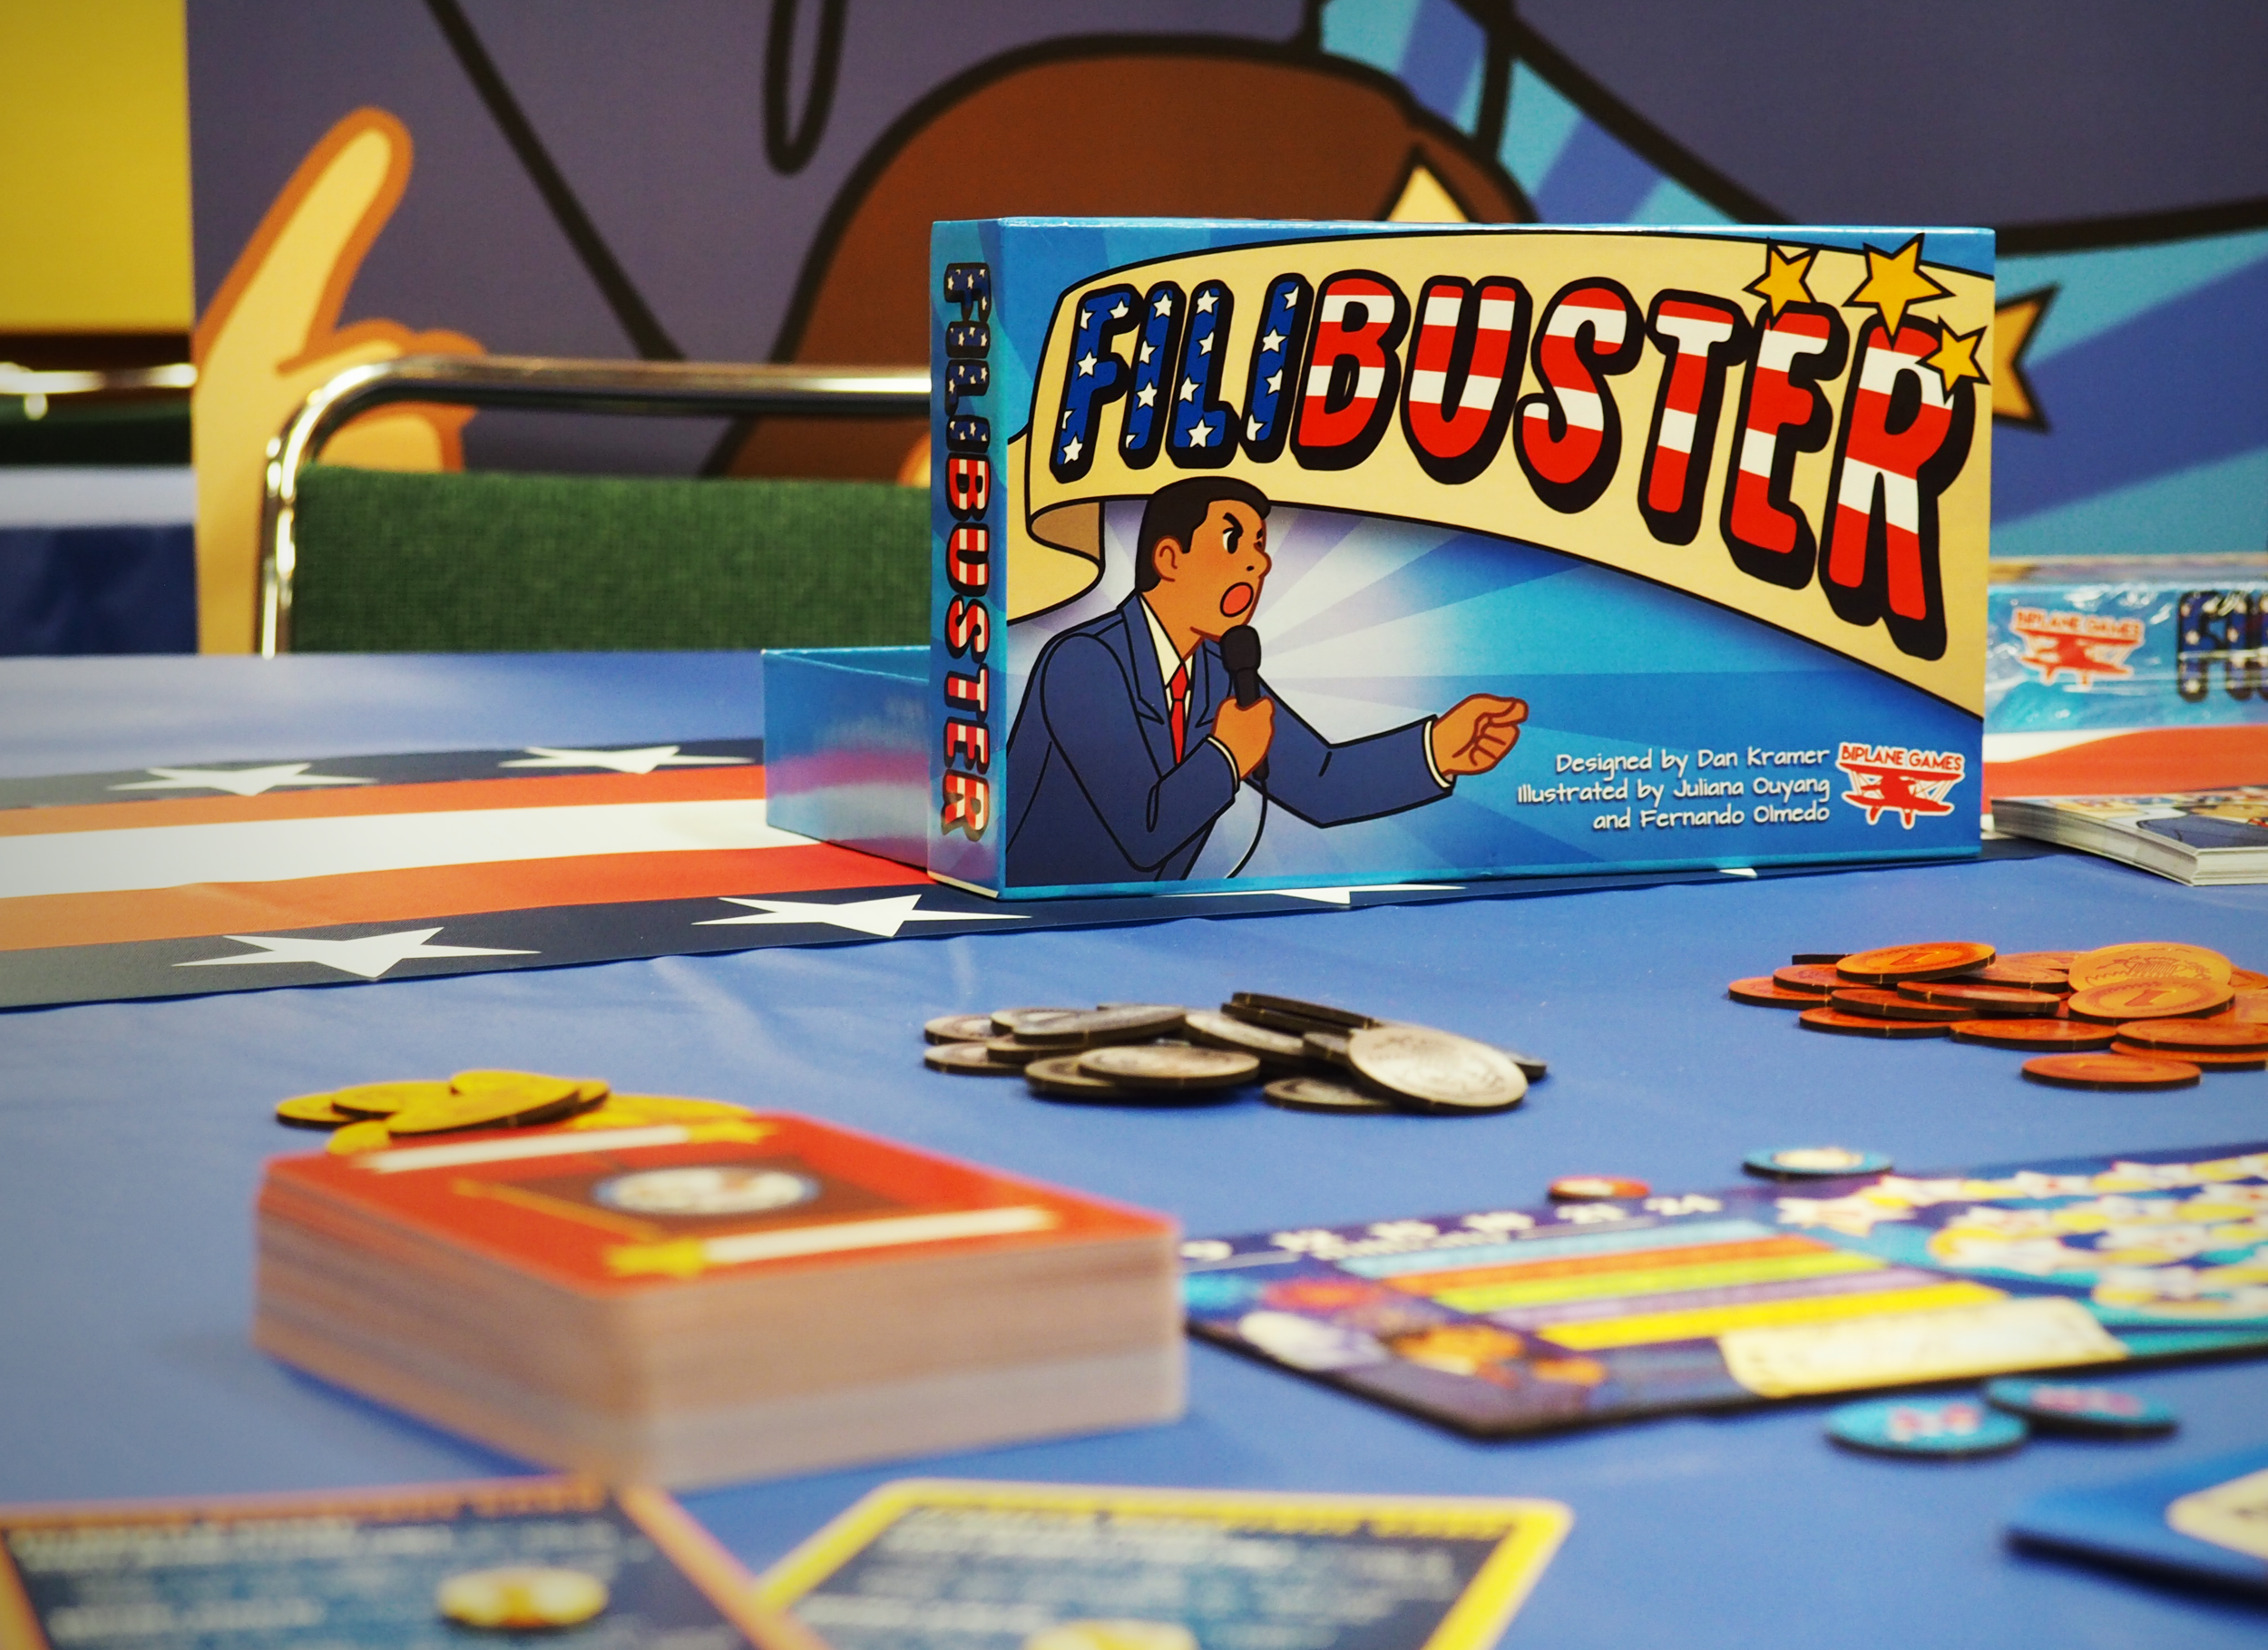 Filibuster is a semi-cooperative game for 3-5 players taking on the role of Senators in a minority party trying to stop a series of silly policies from passing. - Players balance between helping the group and working together to block policies against their own personal goal of earning the most influence (points) through their actions.The game features charming and tongue-in-cheek art, interesting twists on traditional mechanics, and a variety of cards and actions for the players to control how cooperatively (or antagonistically!) they work with each other.